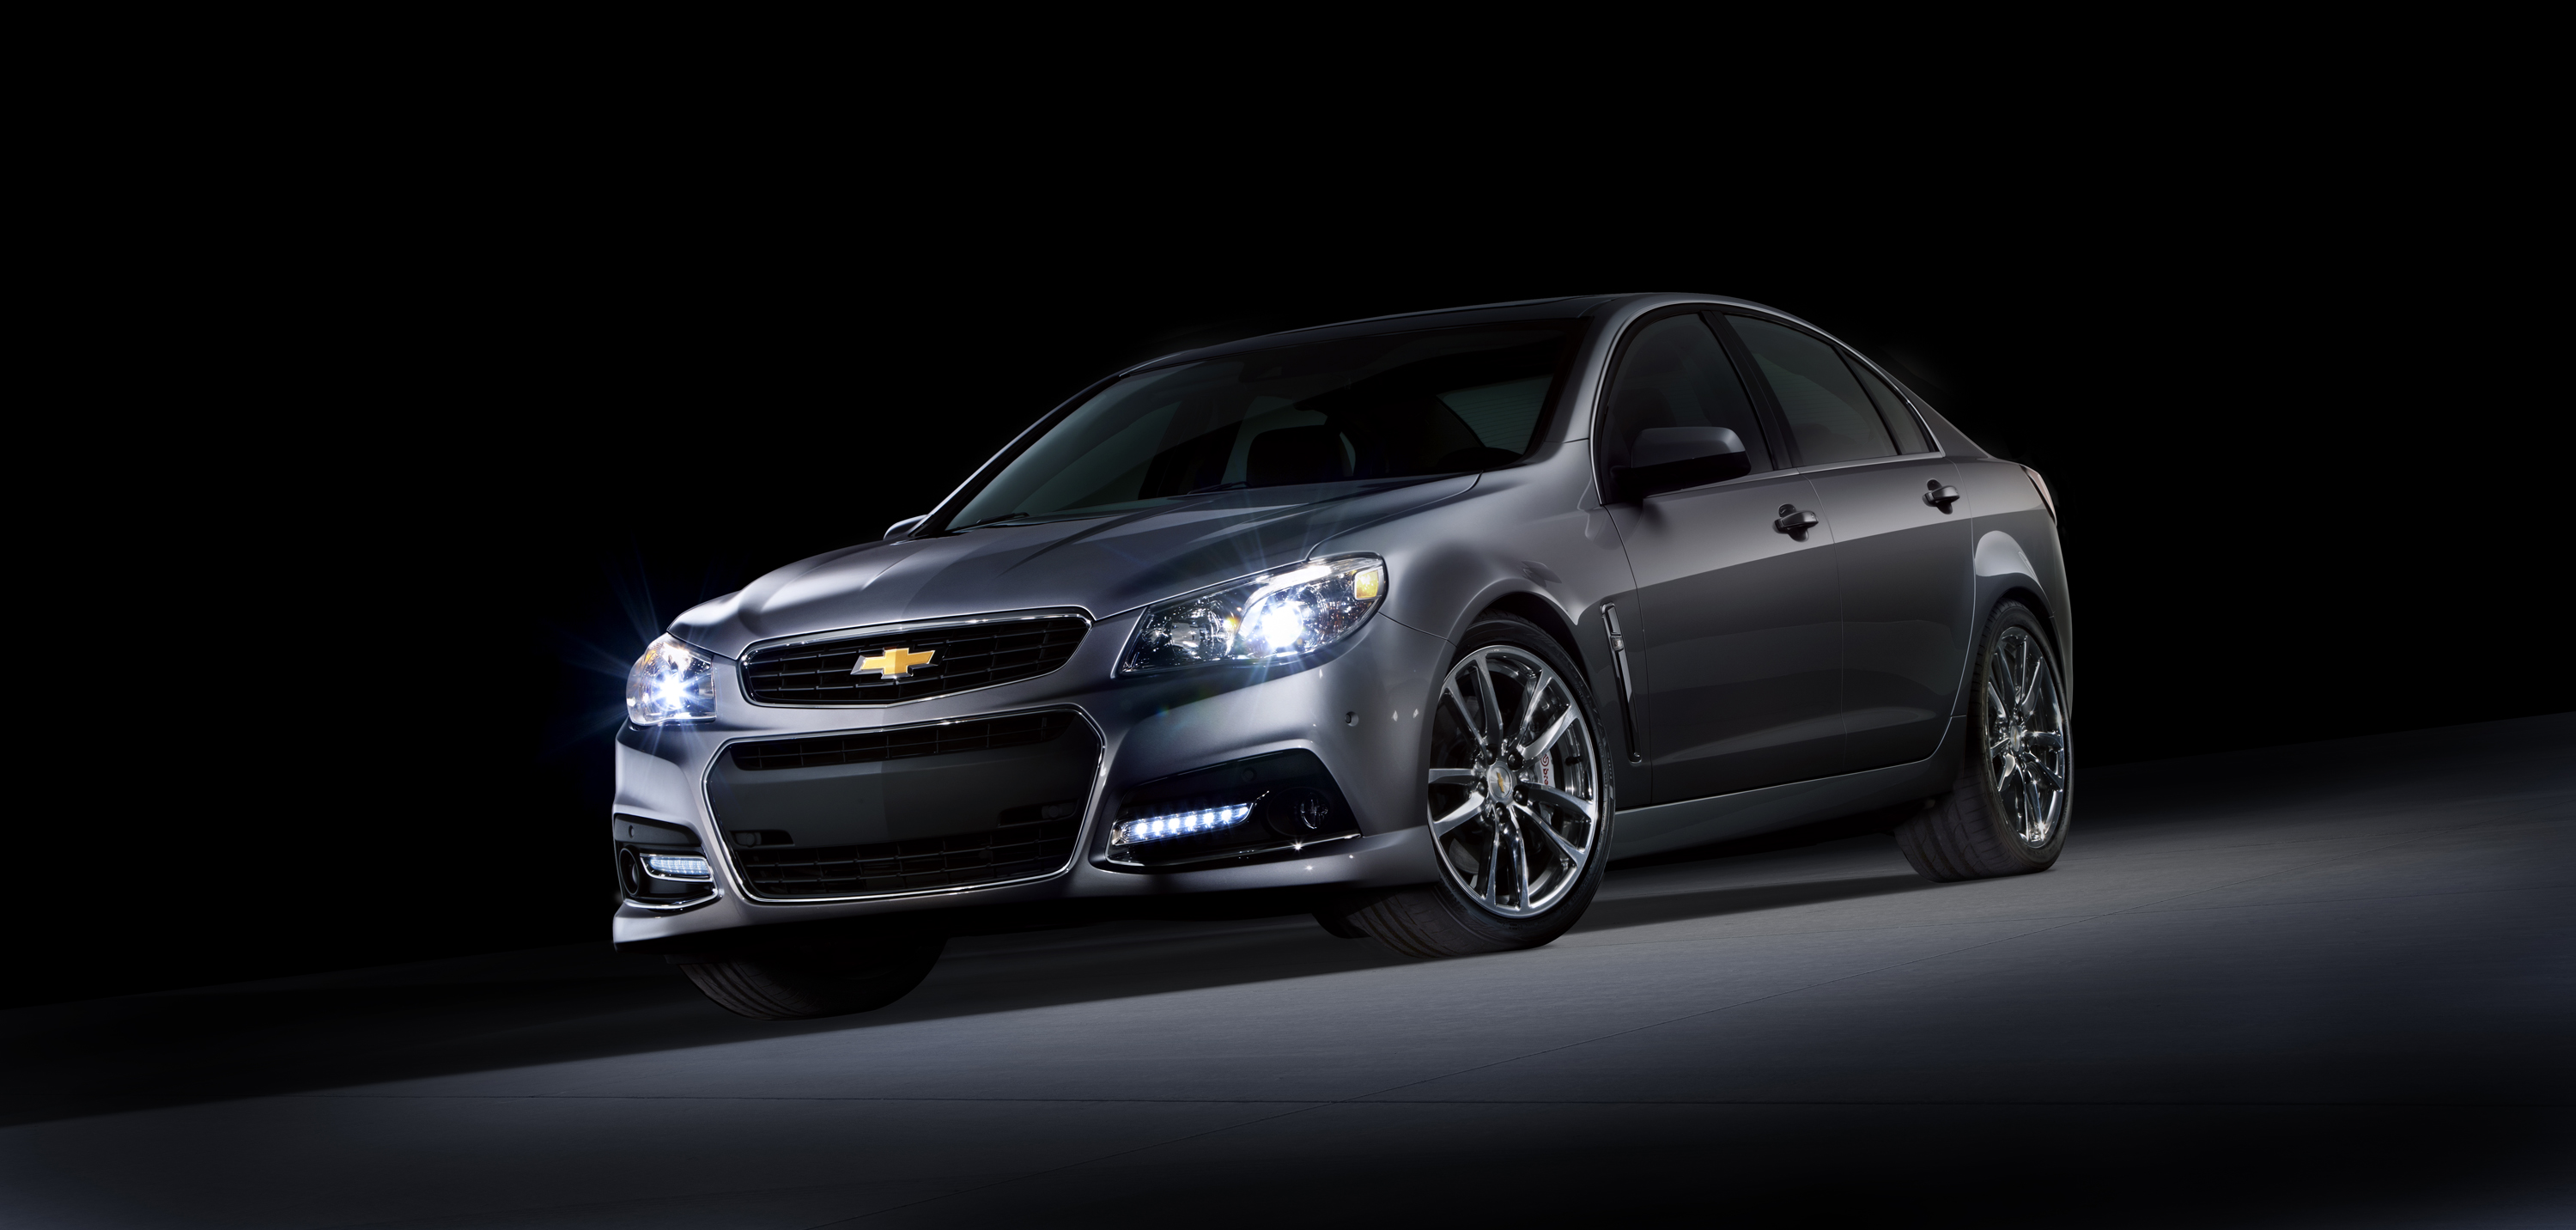 2014 Chevrolet SS: Performance Sedan with Racing DNA